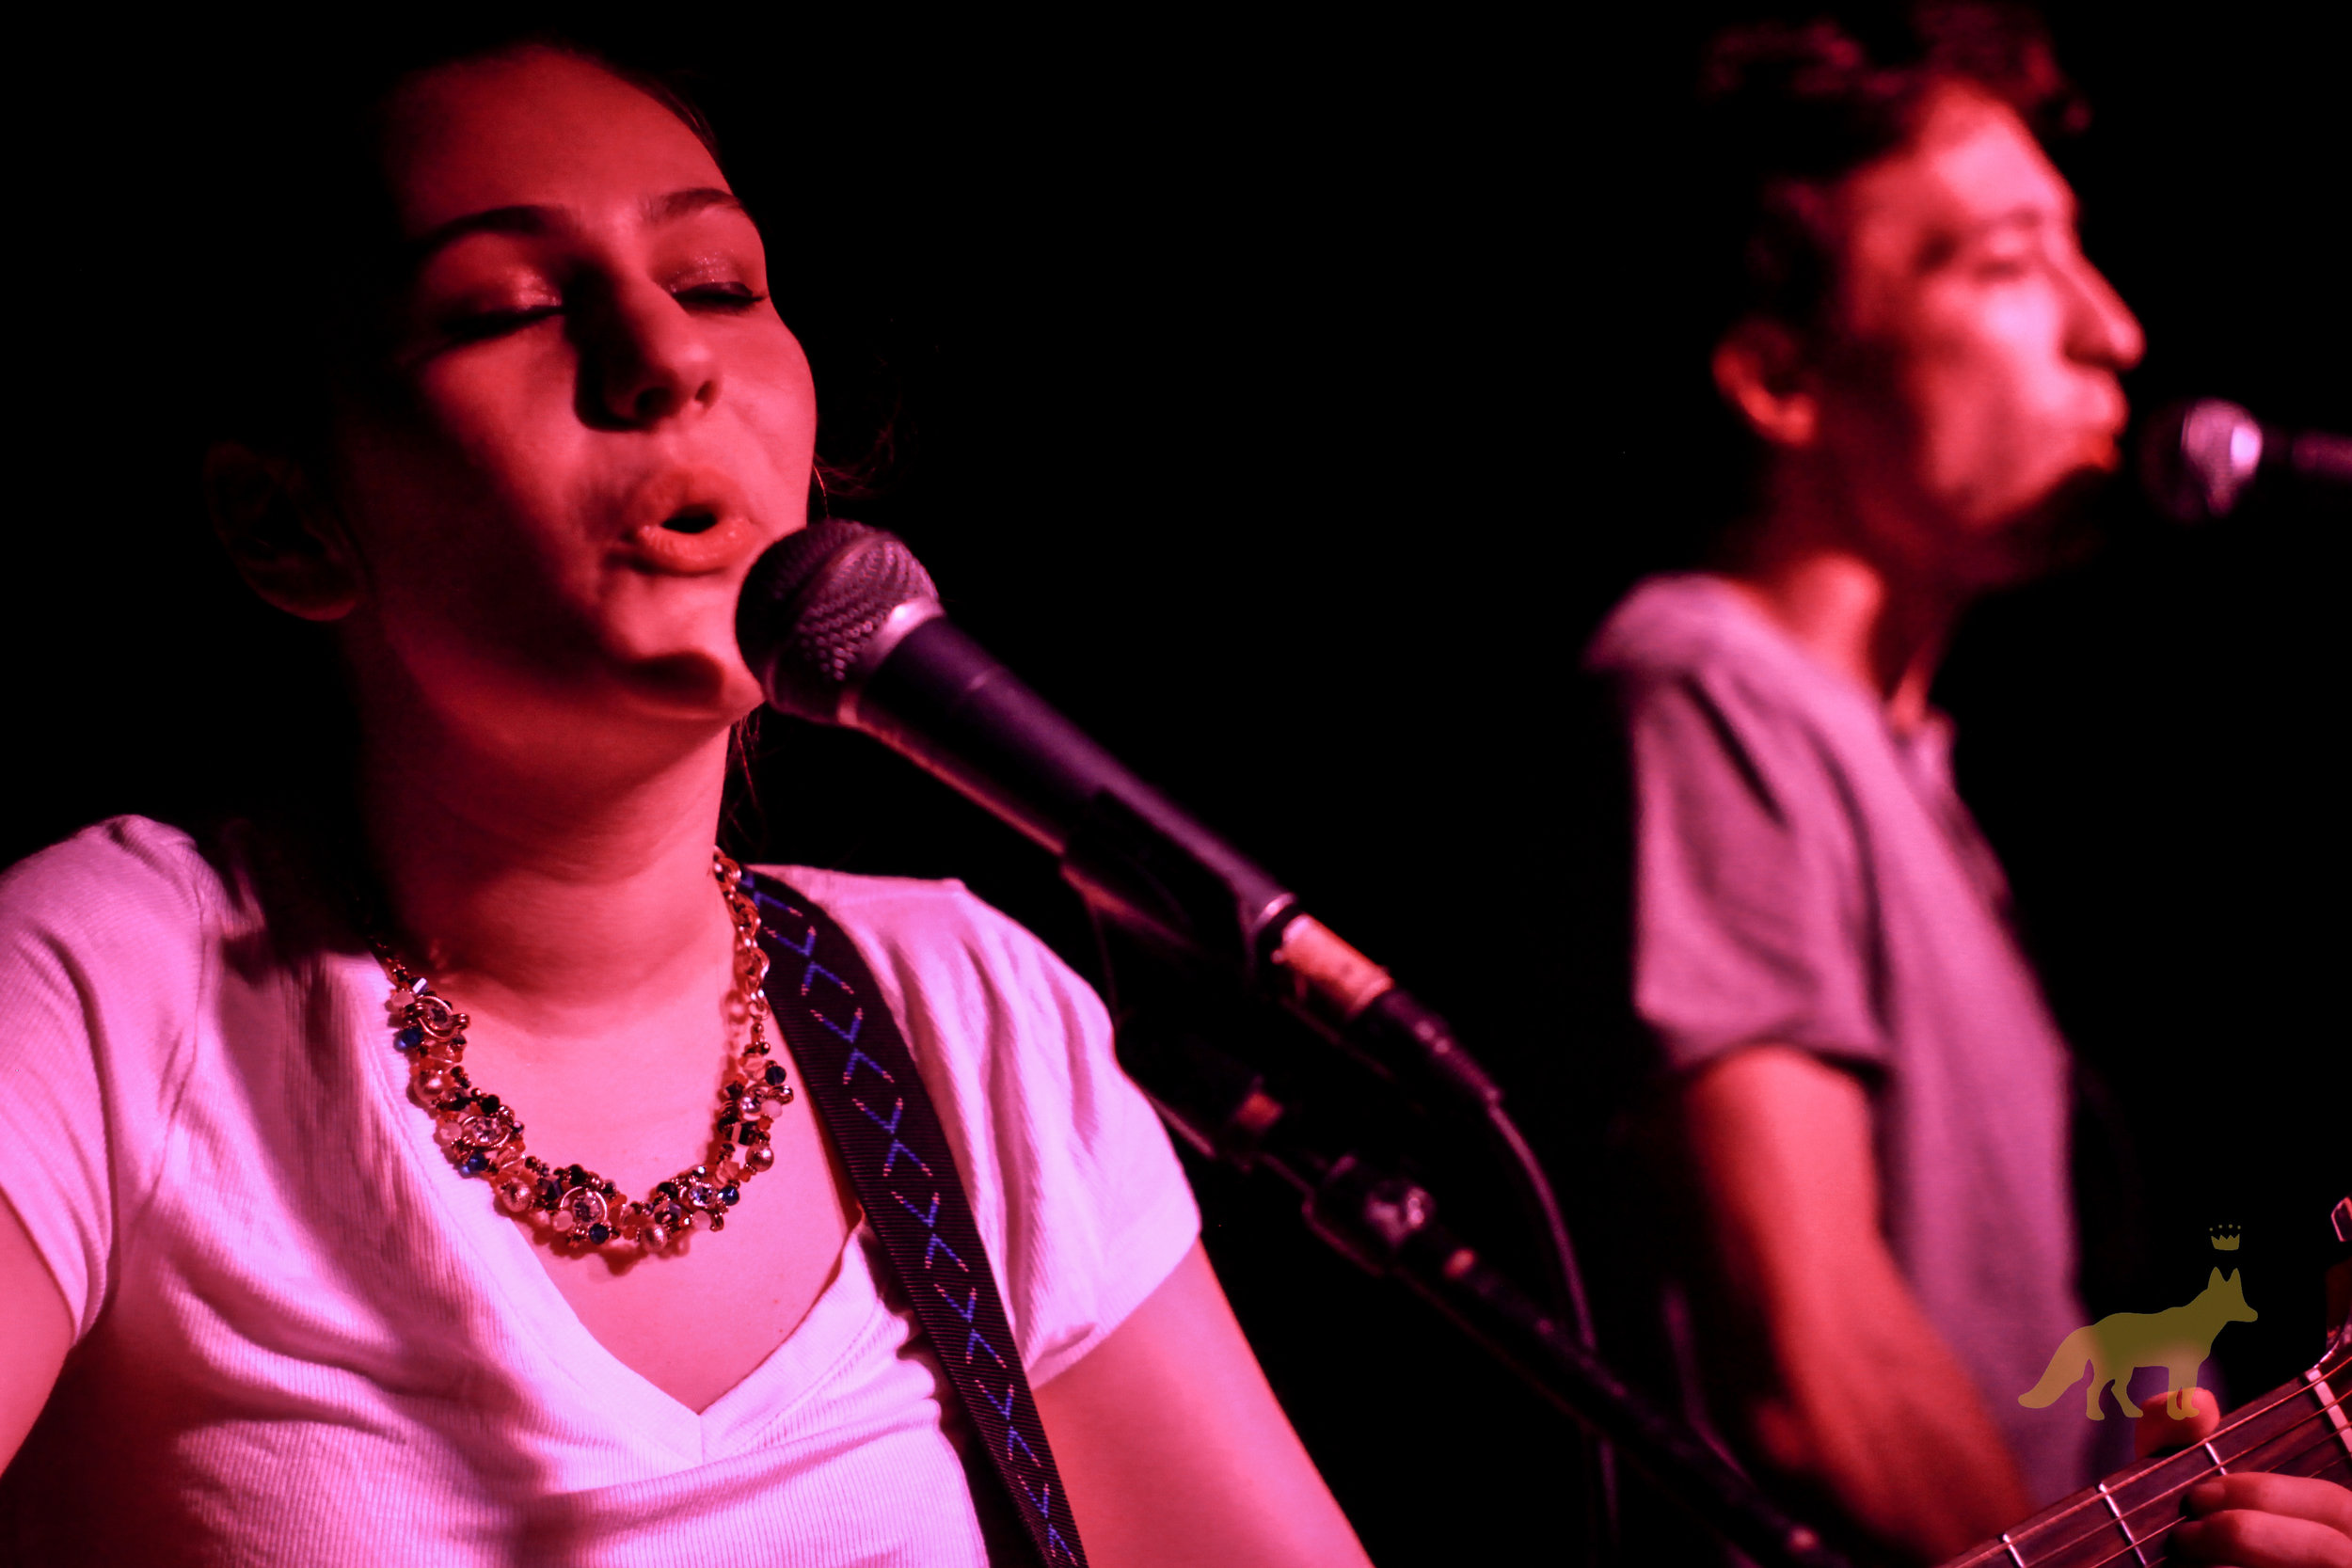 Katie Zaccardi crooning the night away at our #WomenInRock show. Photo courtesy of Kevin Vallejos.